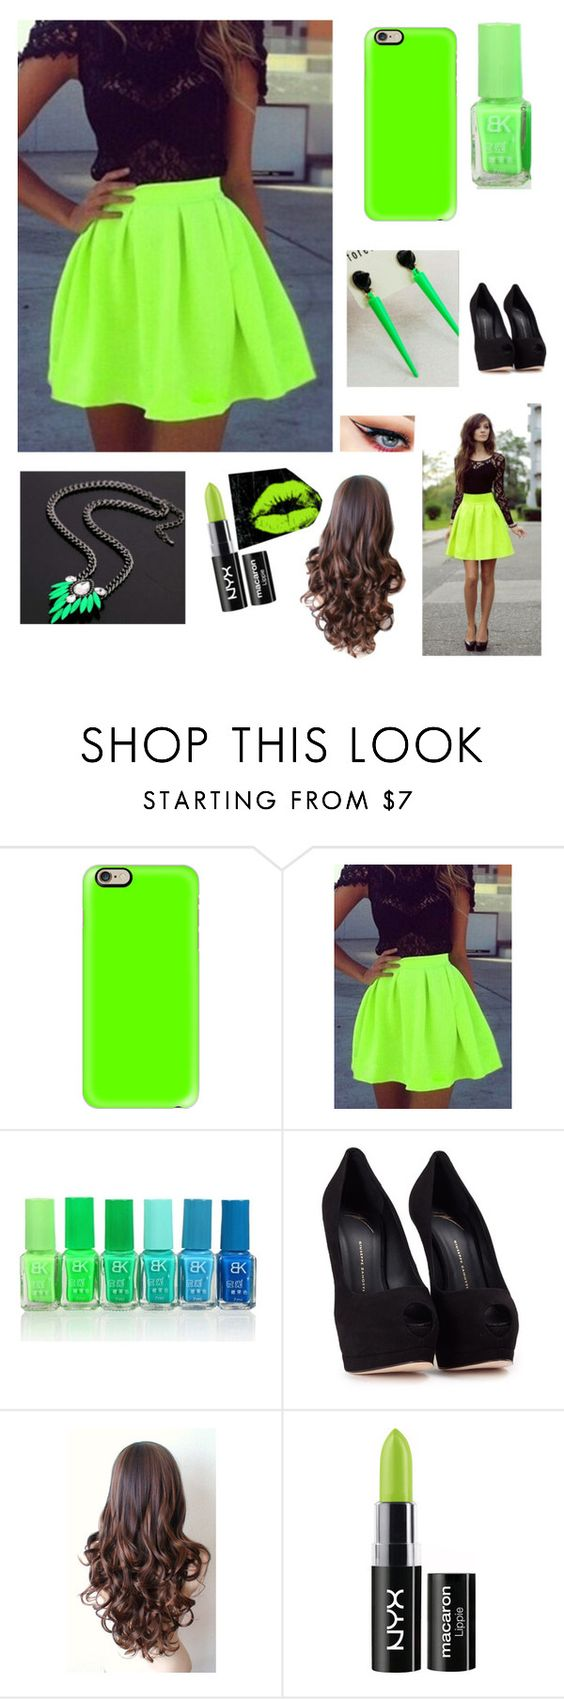 """NEON LOVE"" by vaibhavkaushik ❤ liked on Polyvore featuring Casetify, Giuseppe Zanotti and NYX"